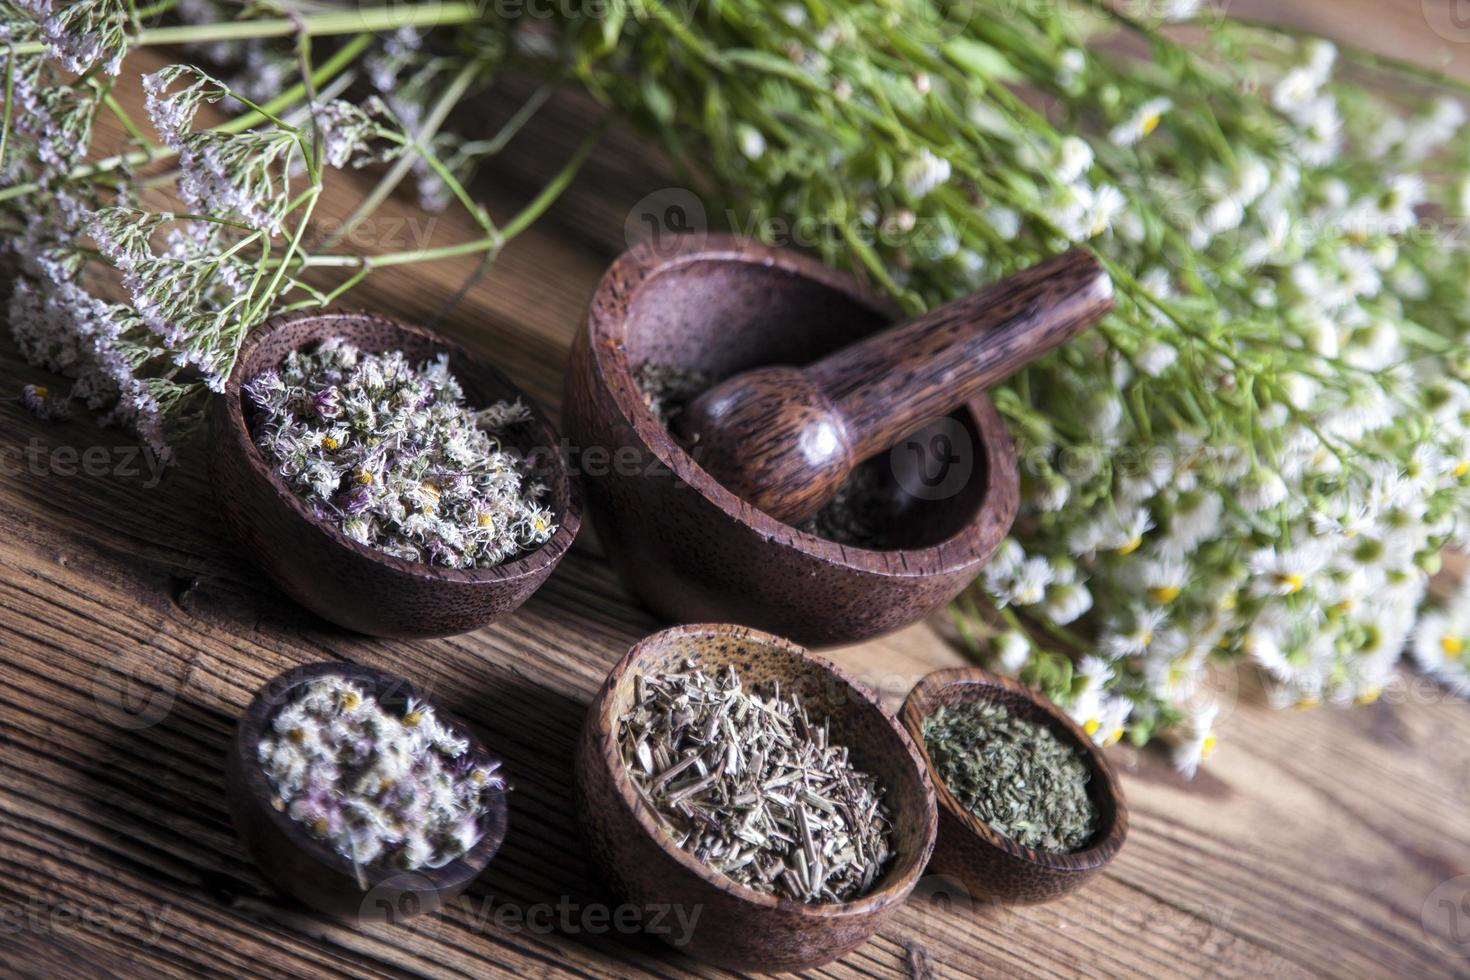 The ancient Chinese medicine photo